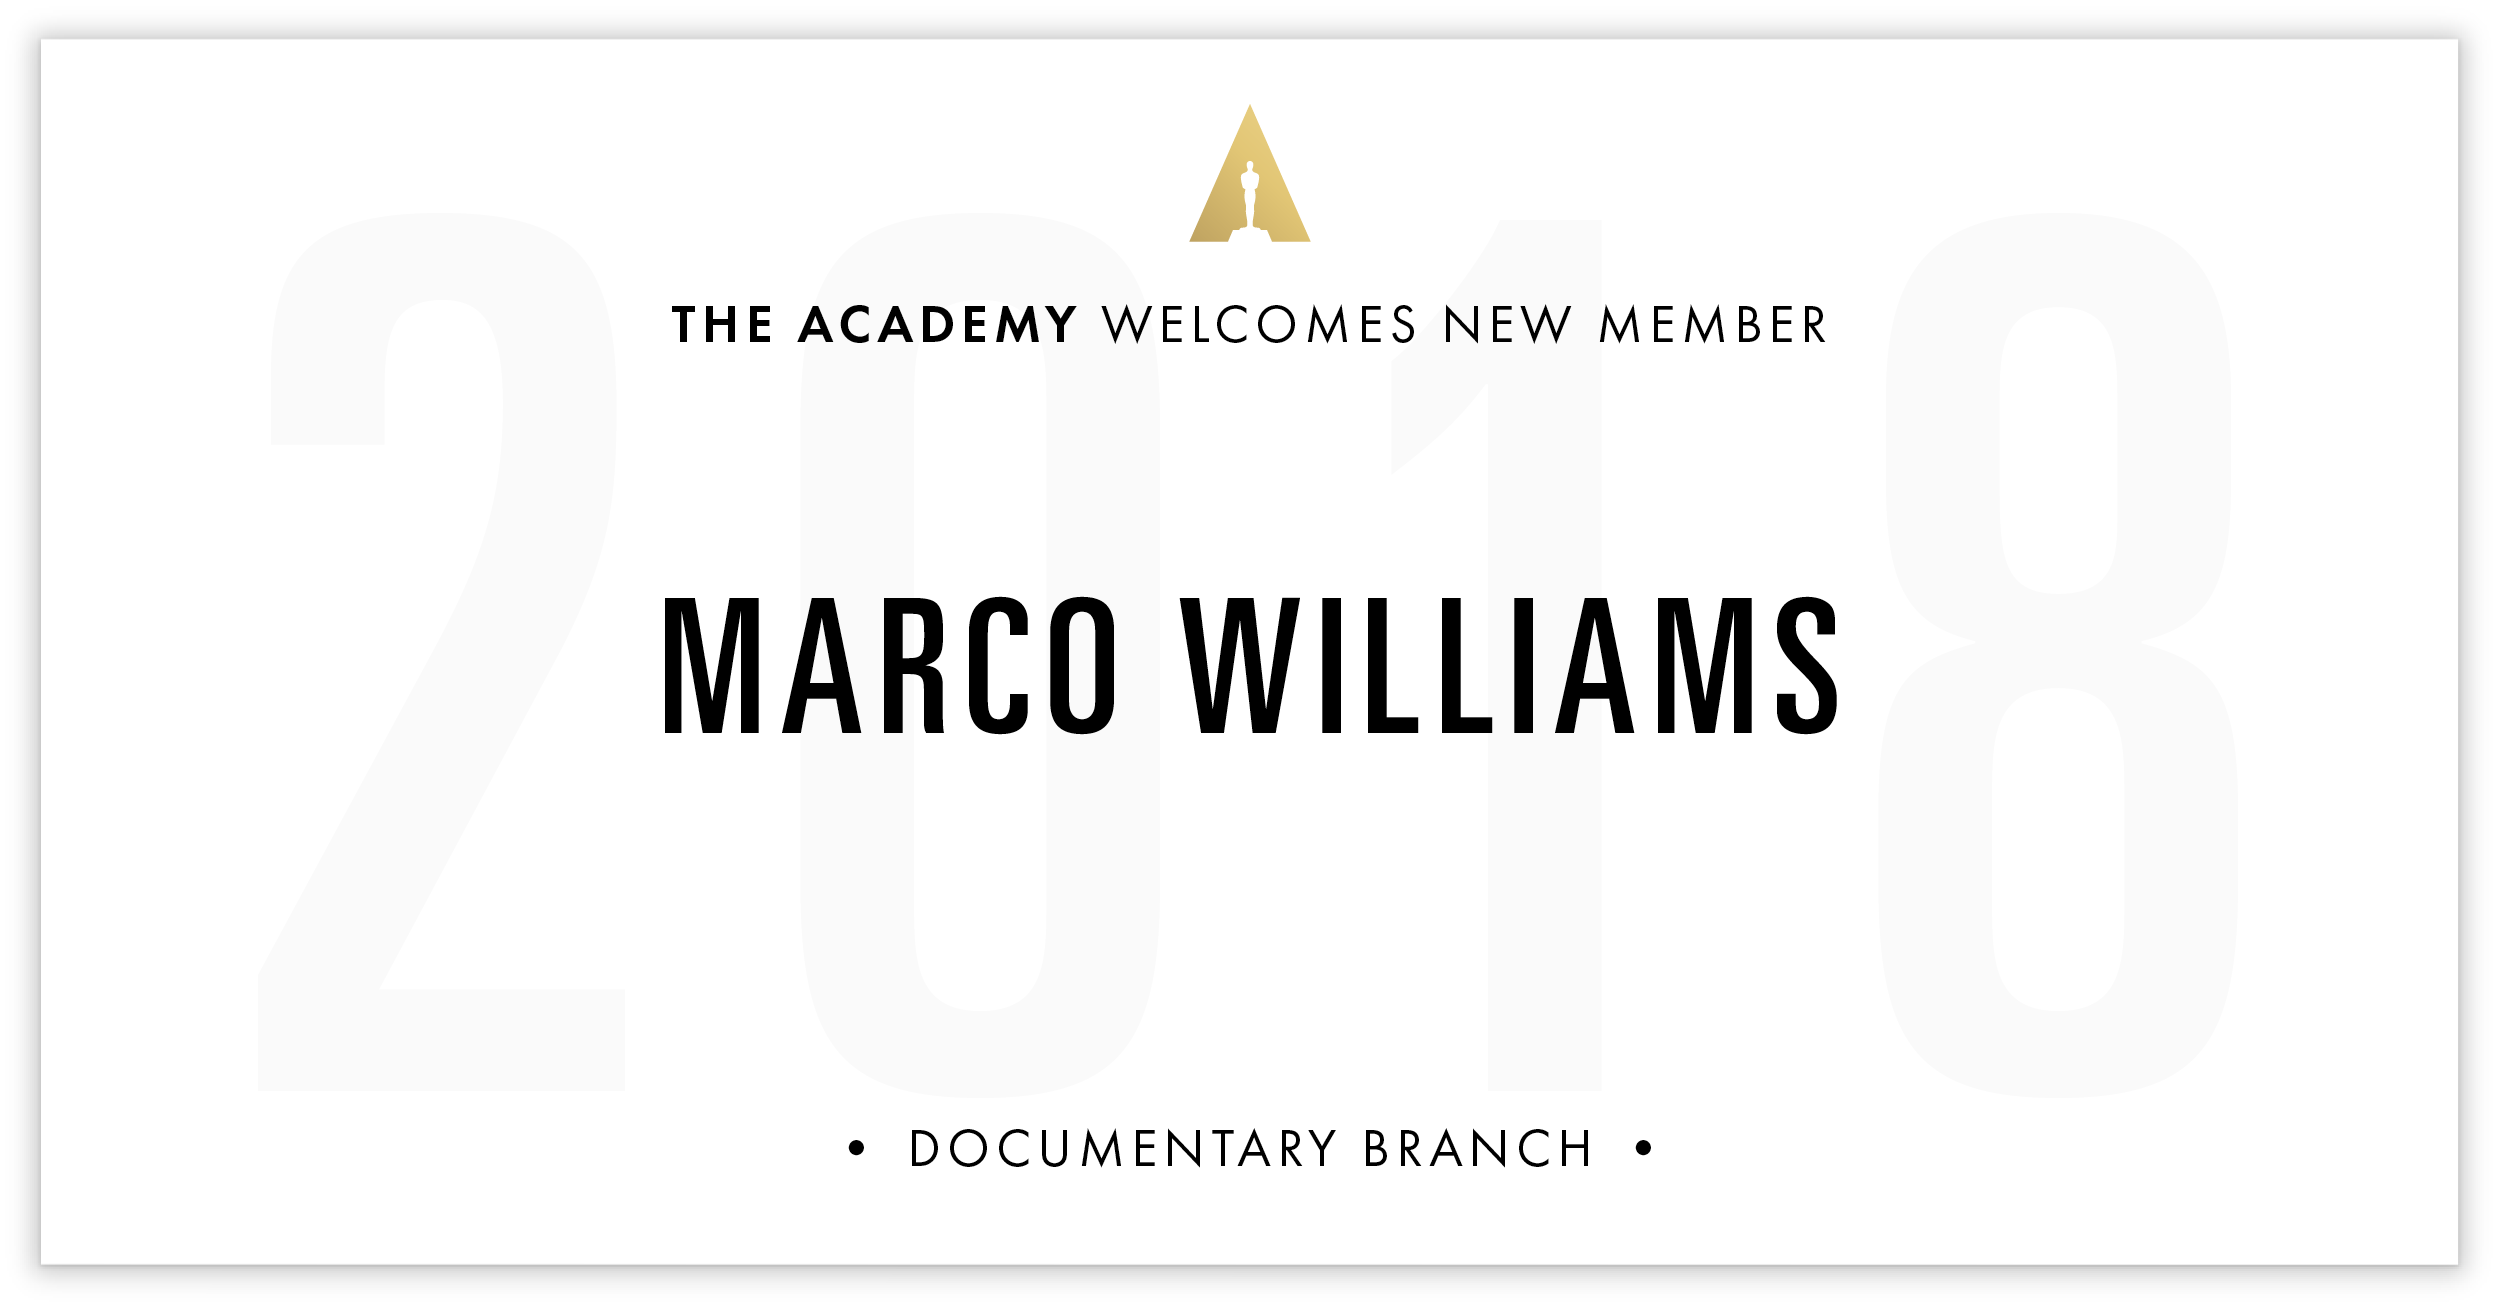 Marco Williams is invited!